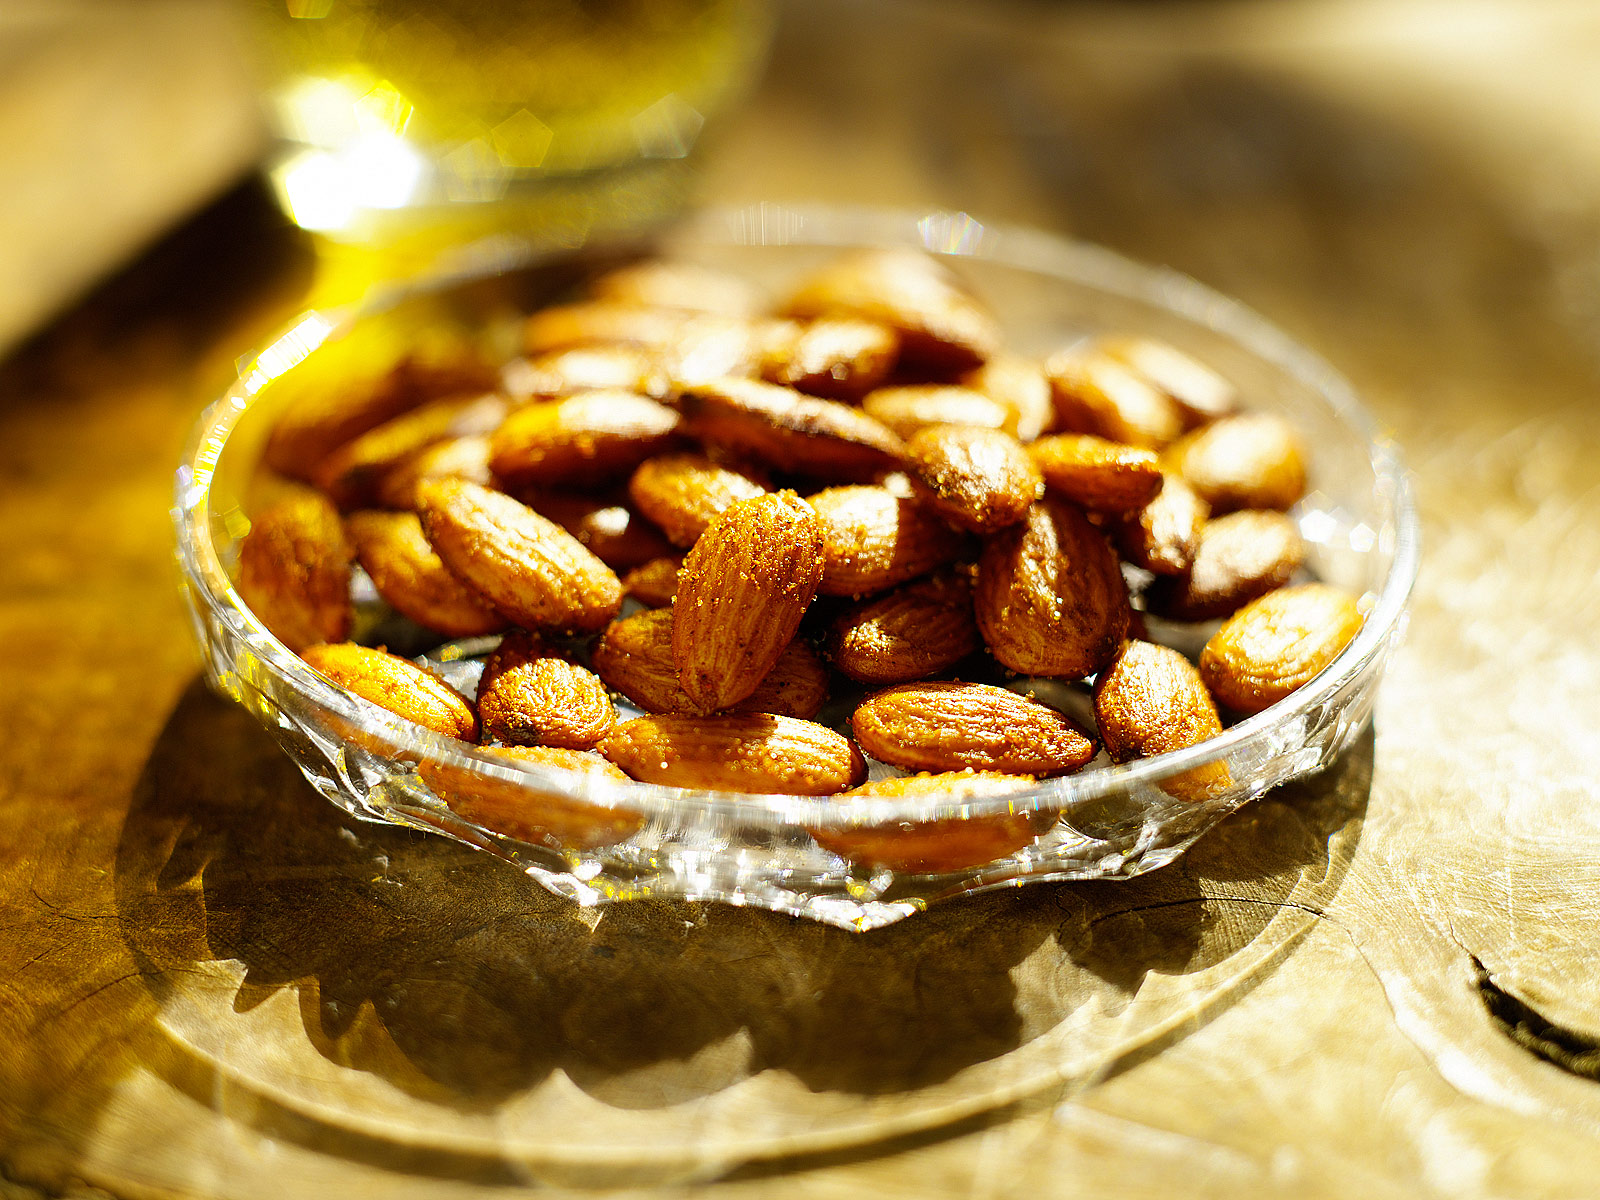 Almonds- Salted Almonds- Best food photography